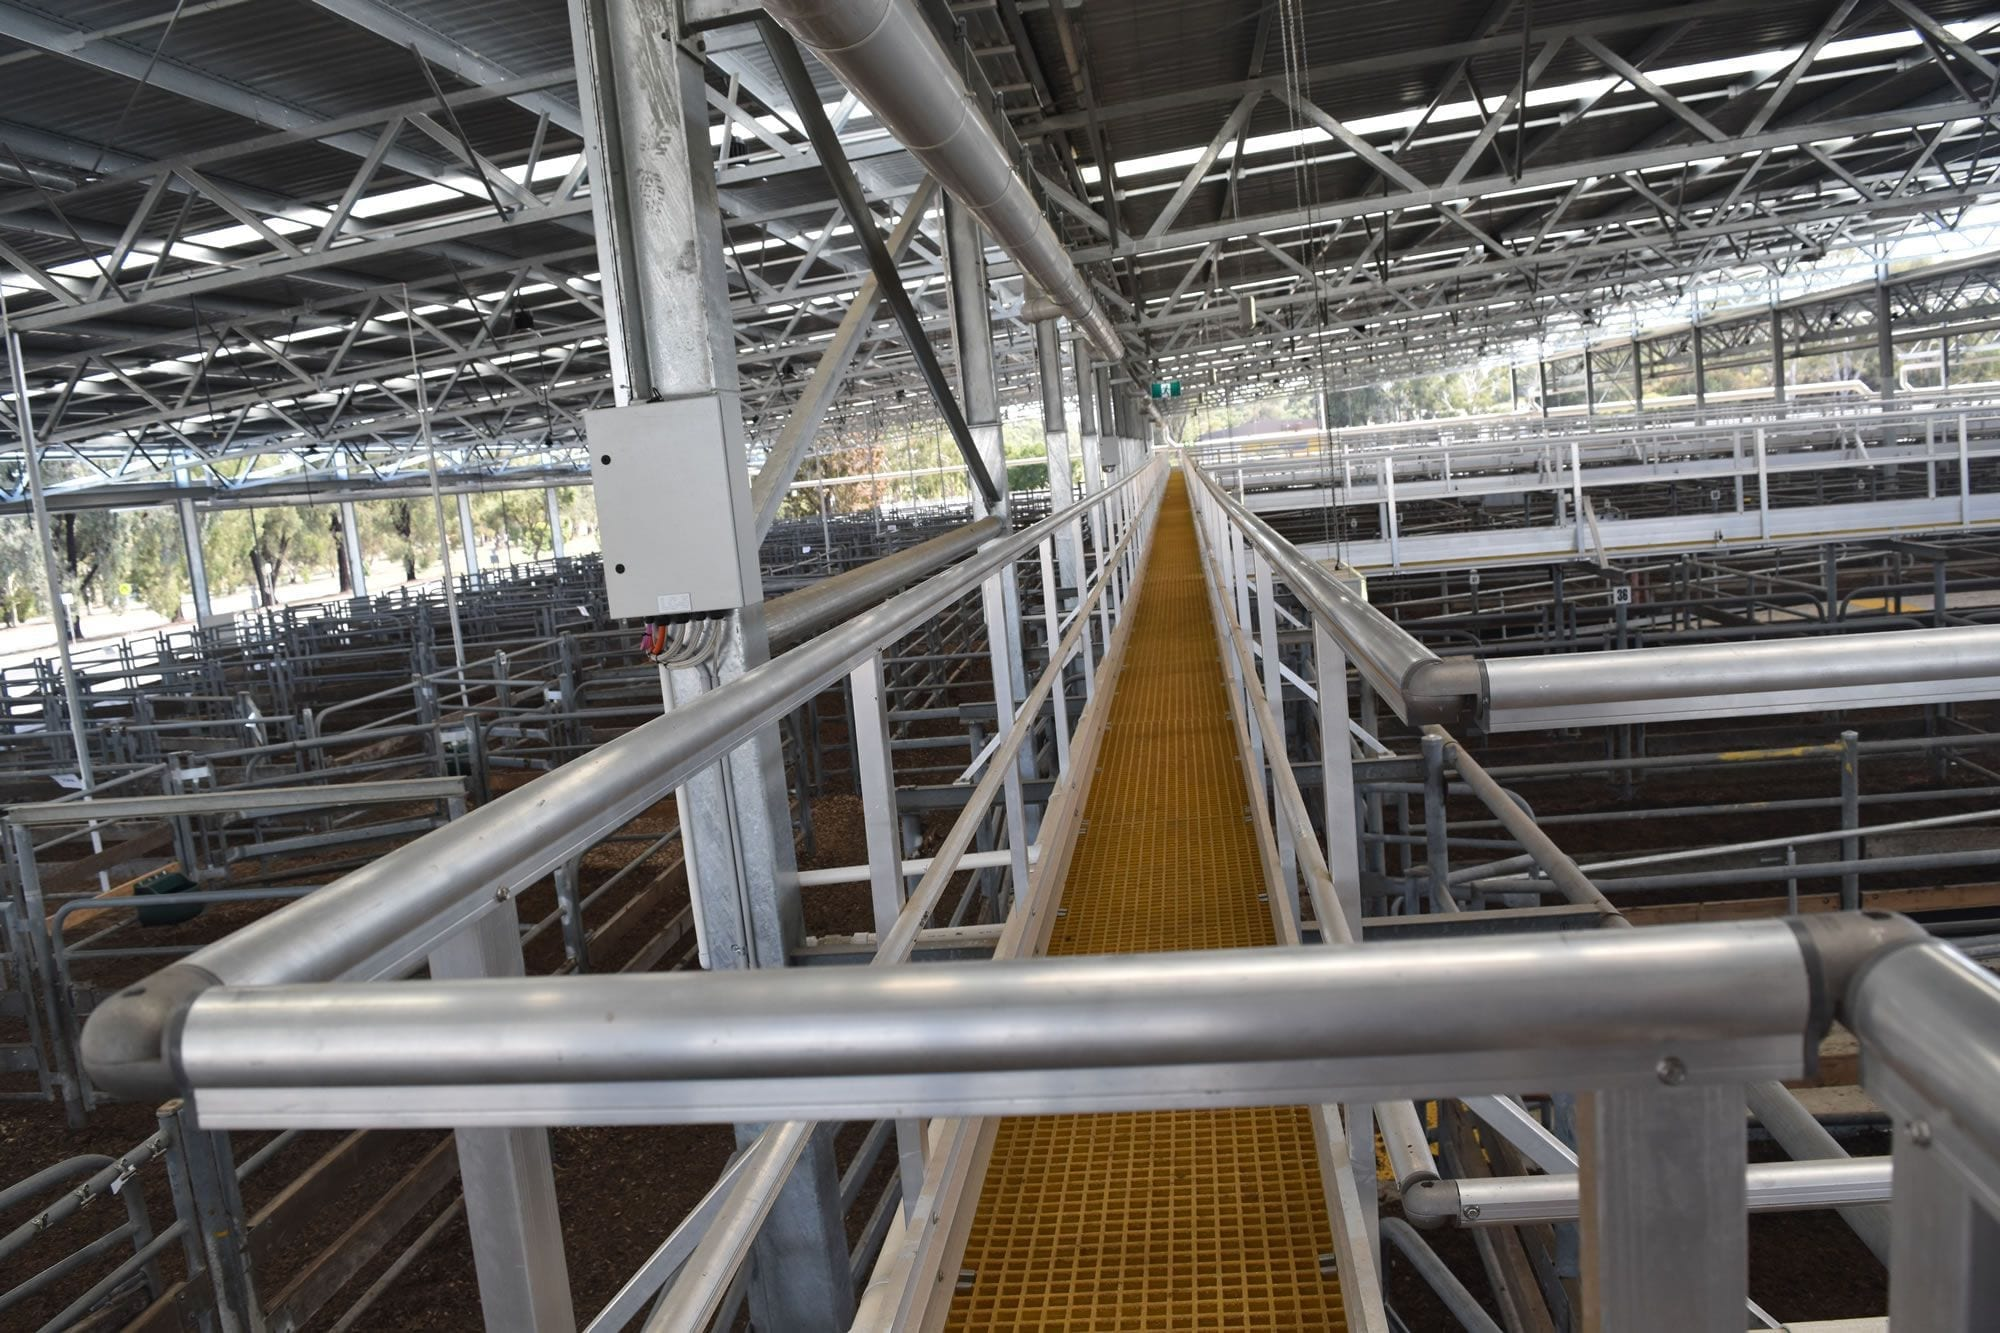 Walkway solution for livestock safety